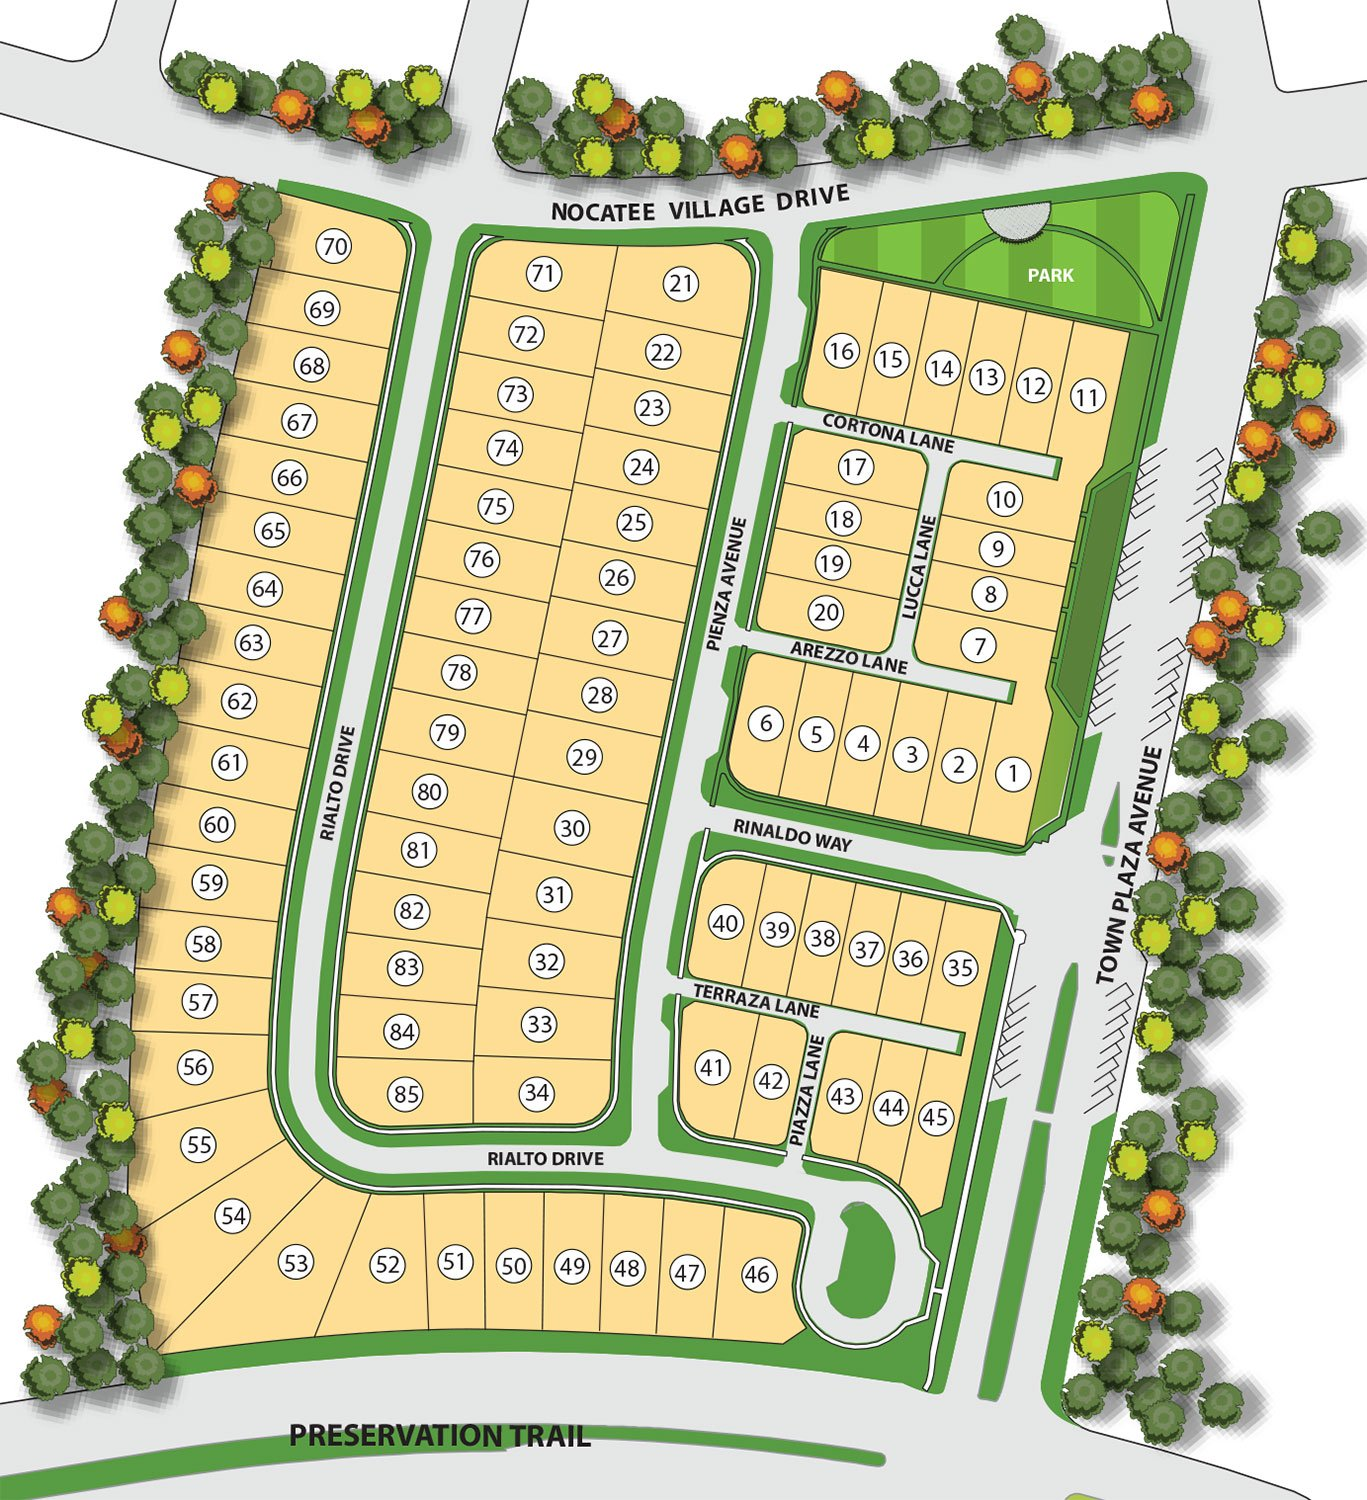 Siena at Town Center Sitemap at Nocatee in Ponte Vedra